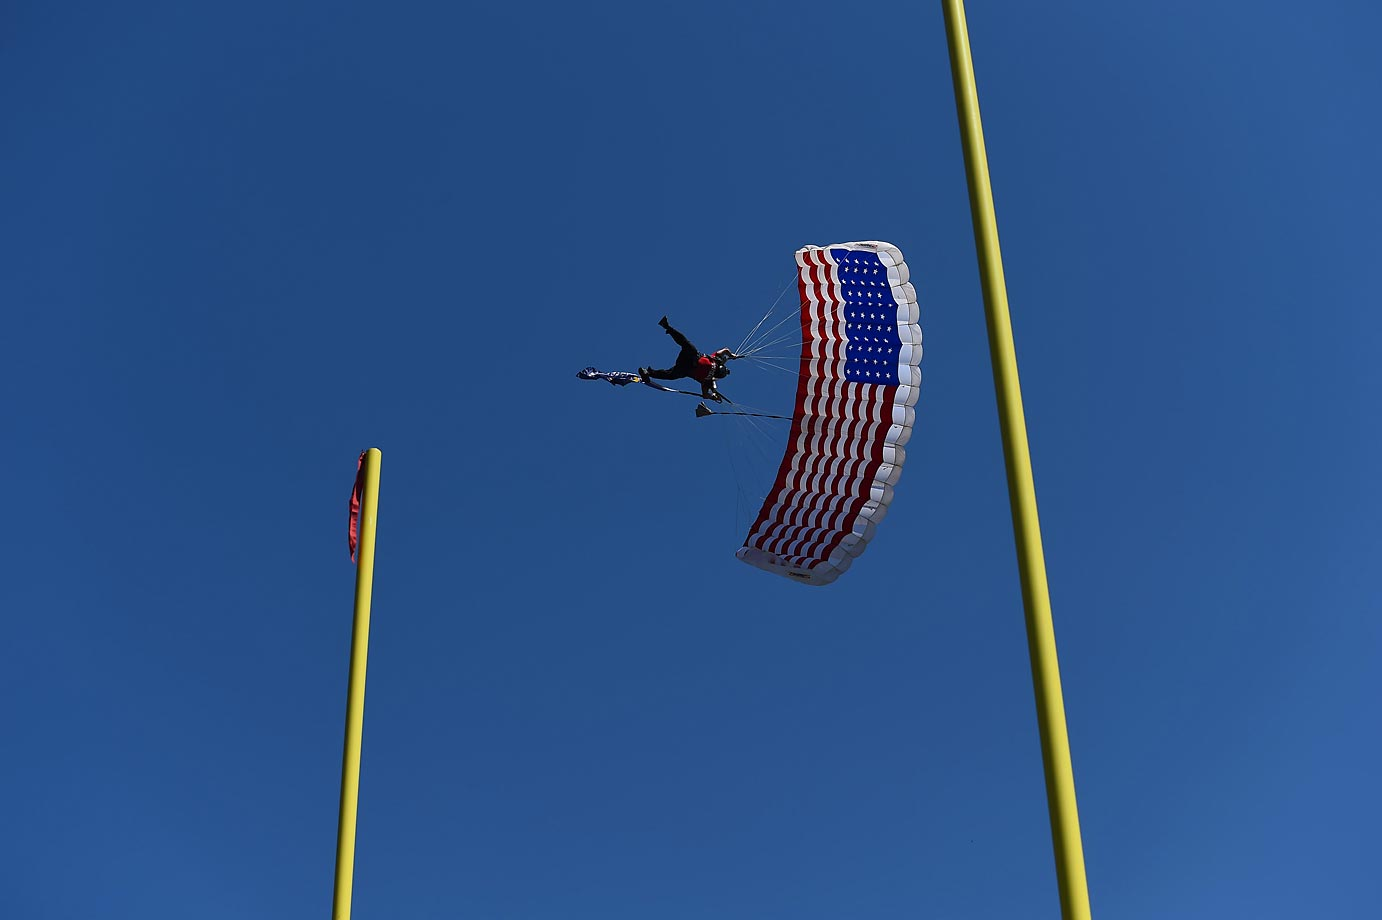 A parachuter at the Seahawks-Chargers game.